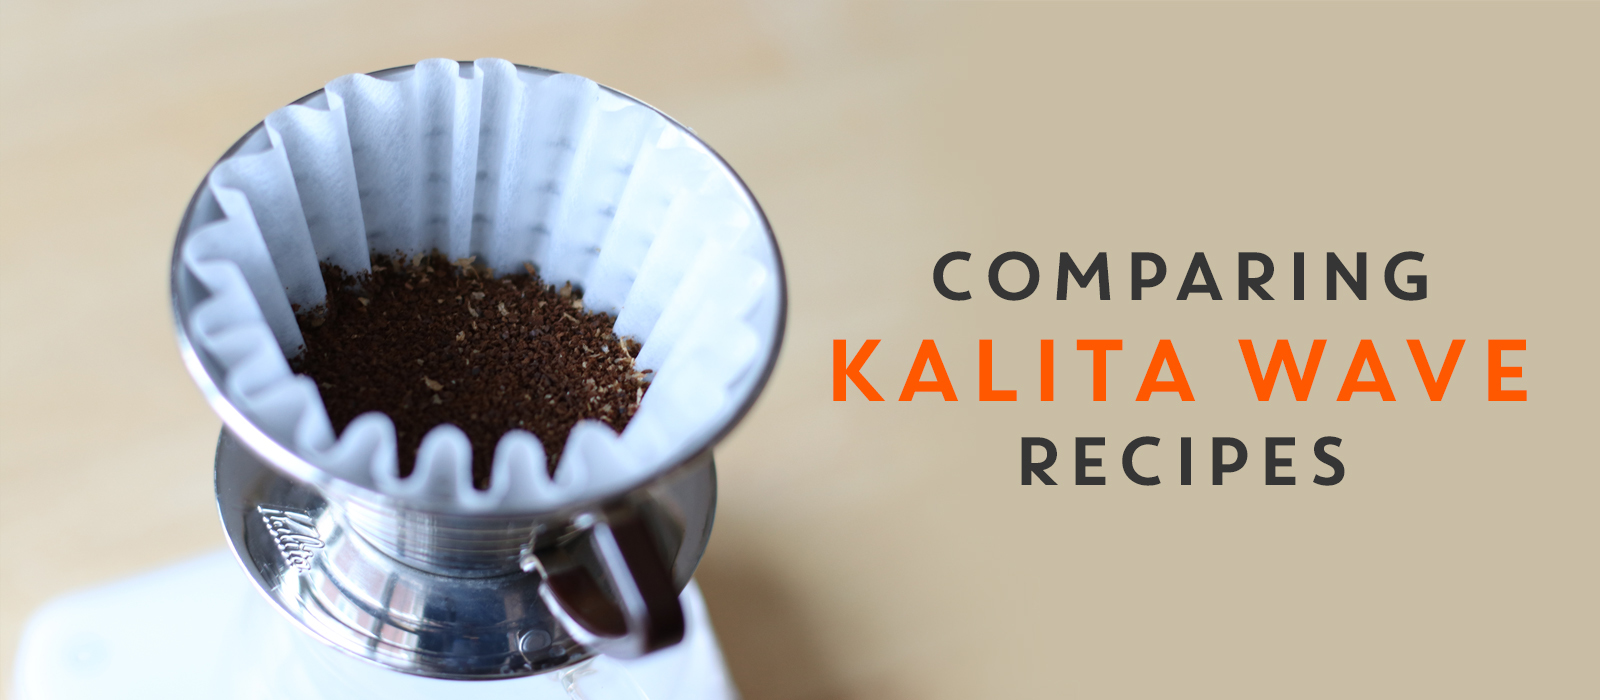 Comparing Kalita Wave Recipes